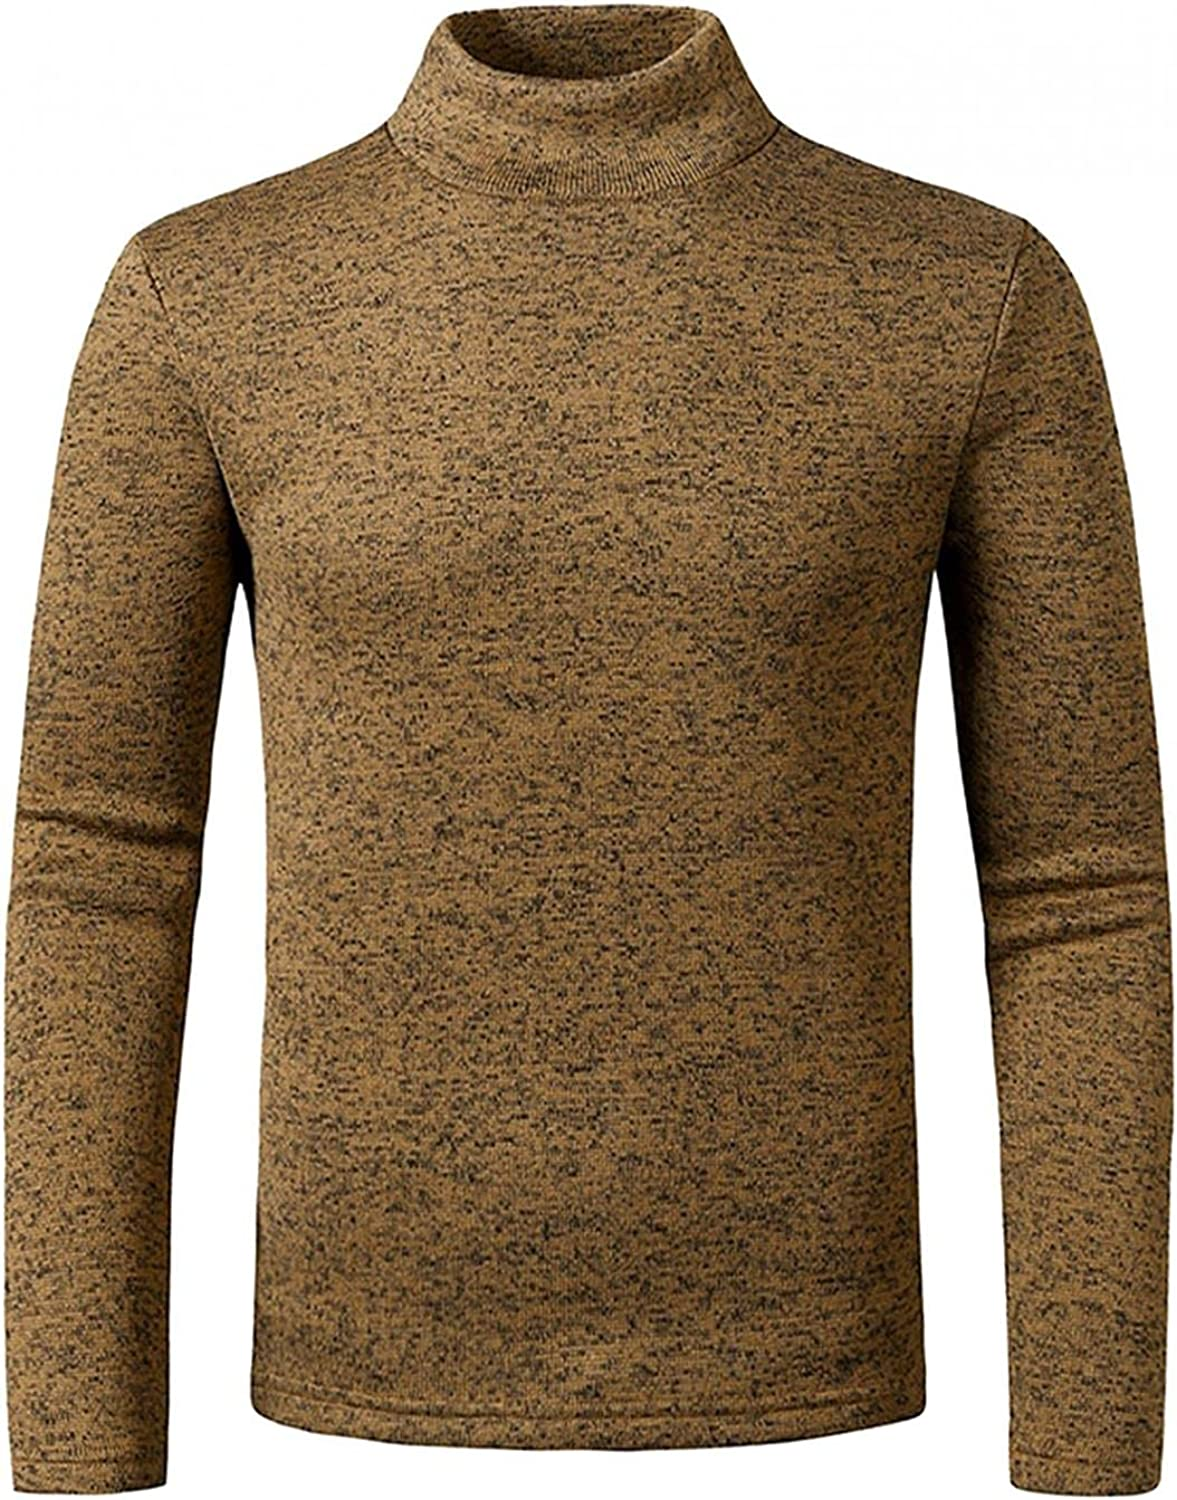 Men's Casual Slim Cotton Polyester Basic Knitted Warm Half High Neck Pullover Sweater Tops Blouse